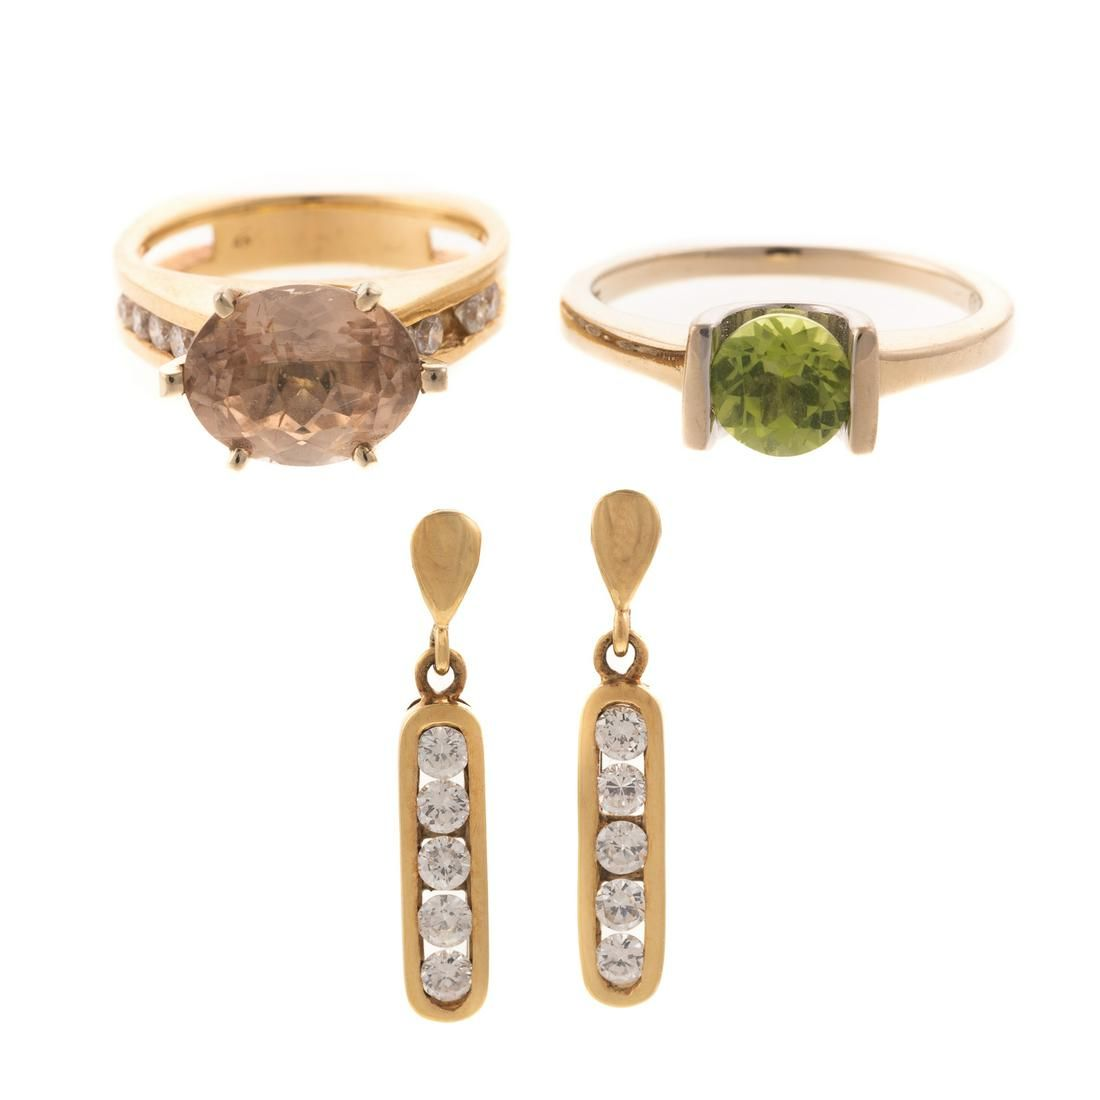 Collection of Gold Rings with Earrings